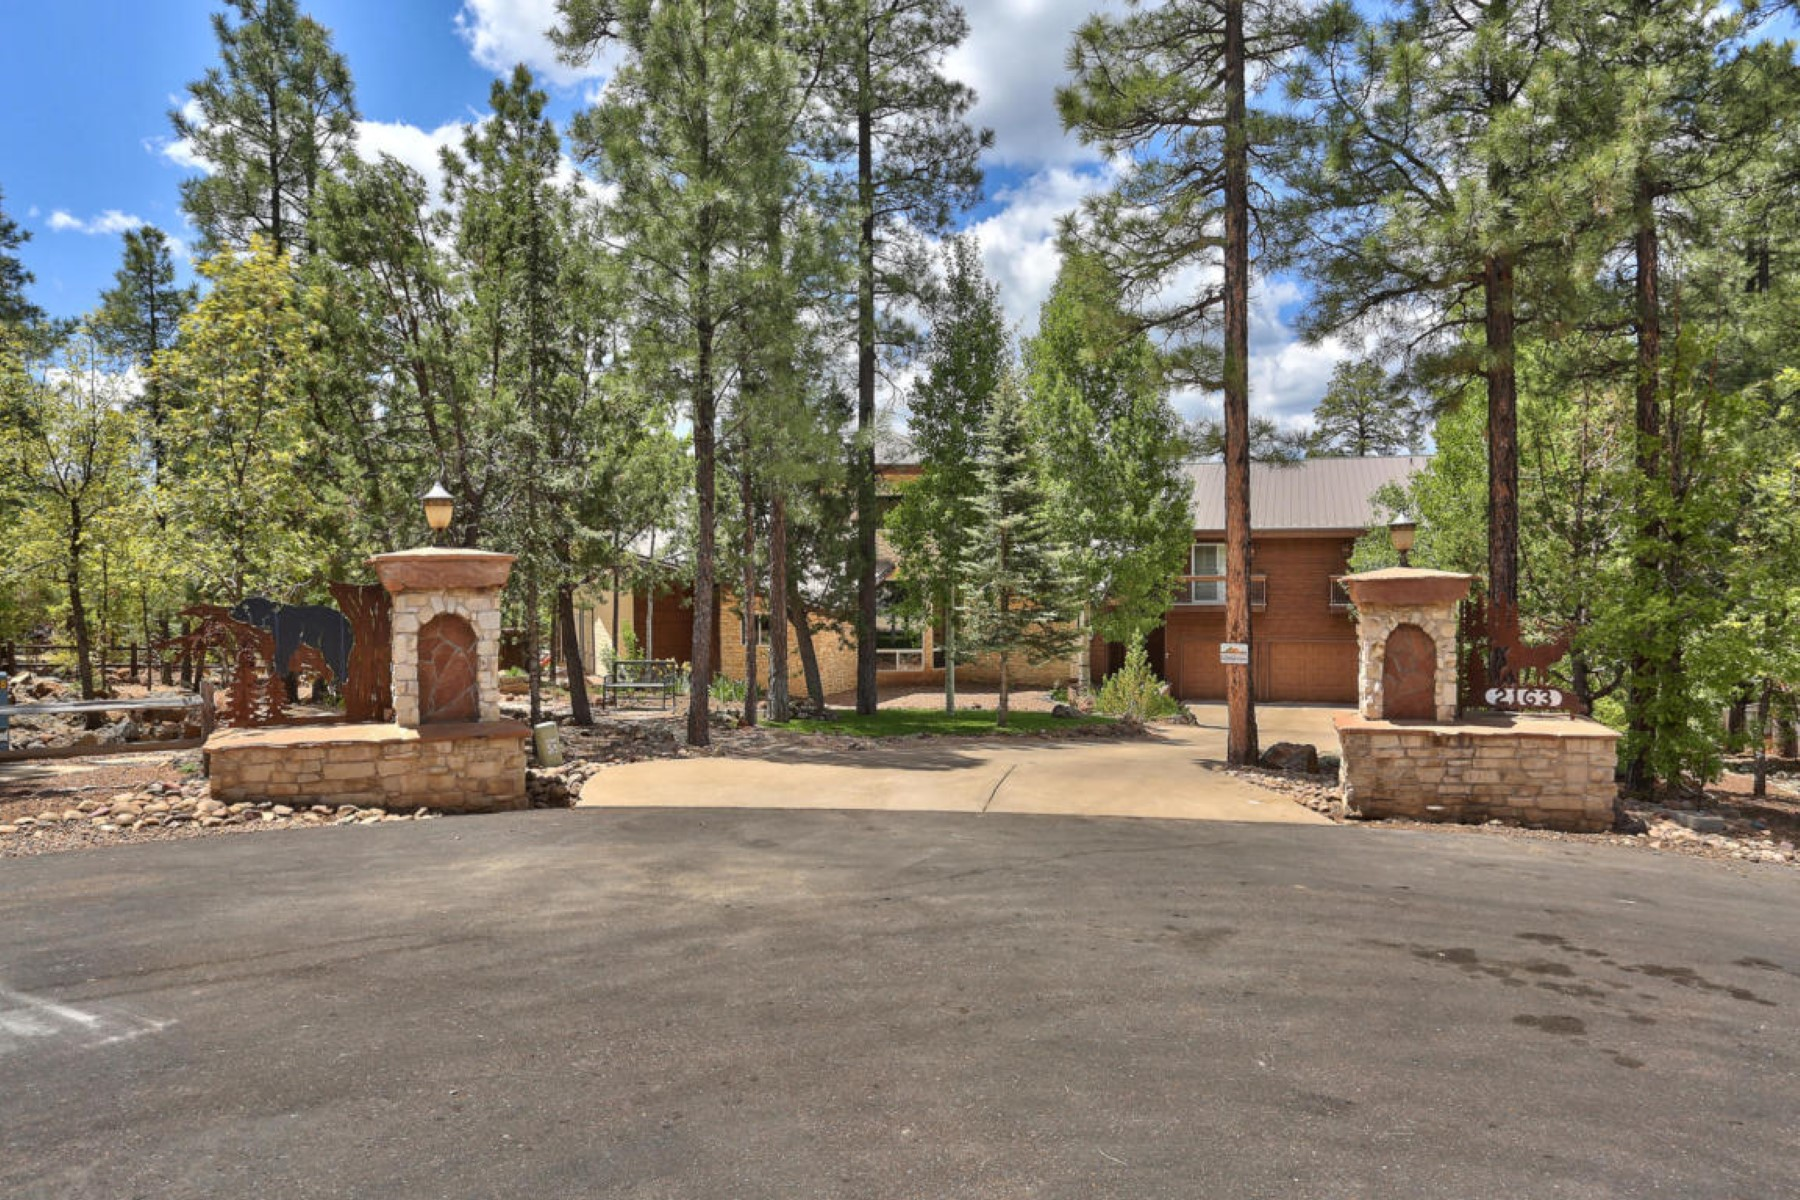 Casa para uma família para Venda às Spectacular estate conveniently located in gated community of Pineridge 2163 Creekside Court Pinetop, Arizona, 85935 Estados Unidos